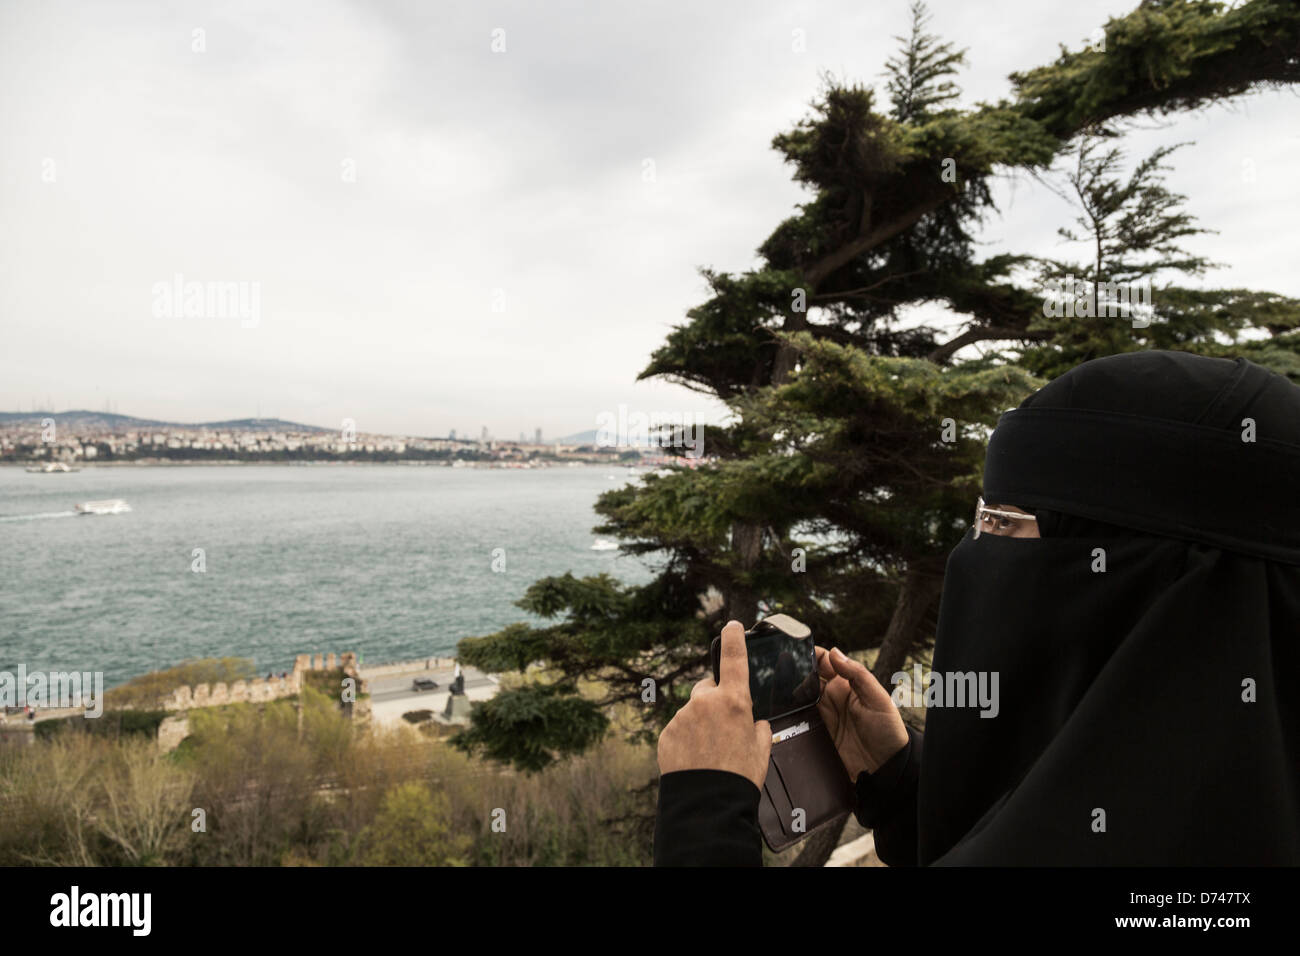 Muslim woman wearing a Burka take photos from the Topkapi palace area. - Stock Image